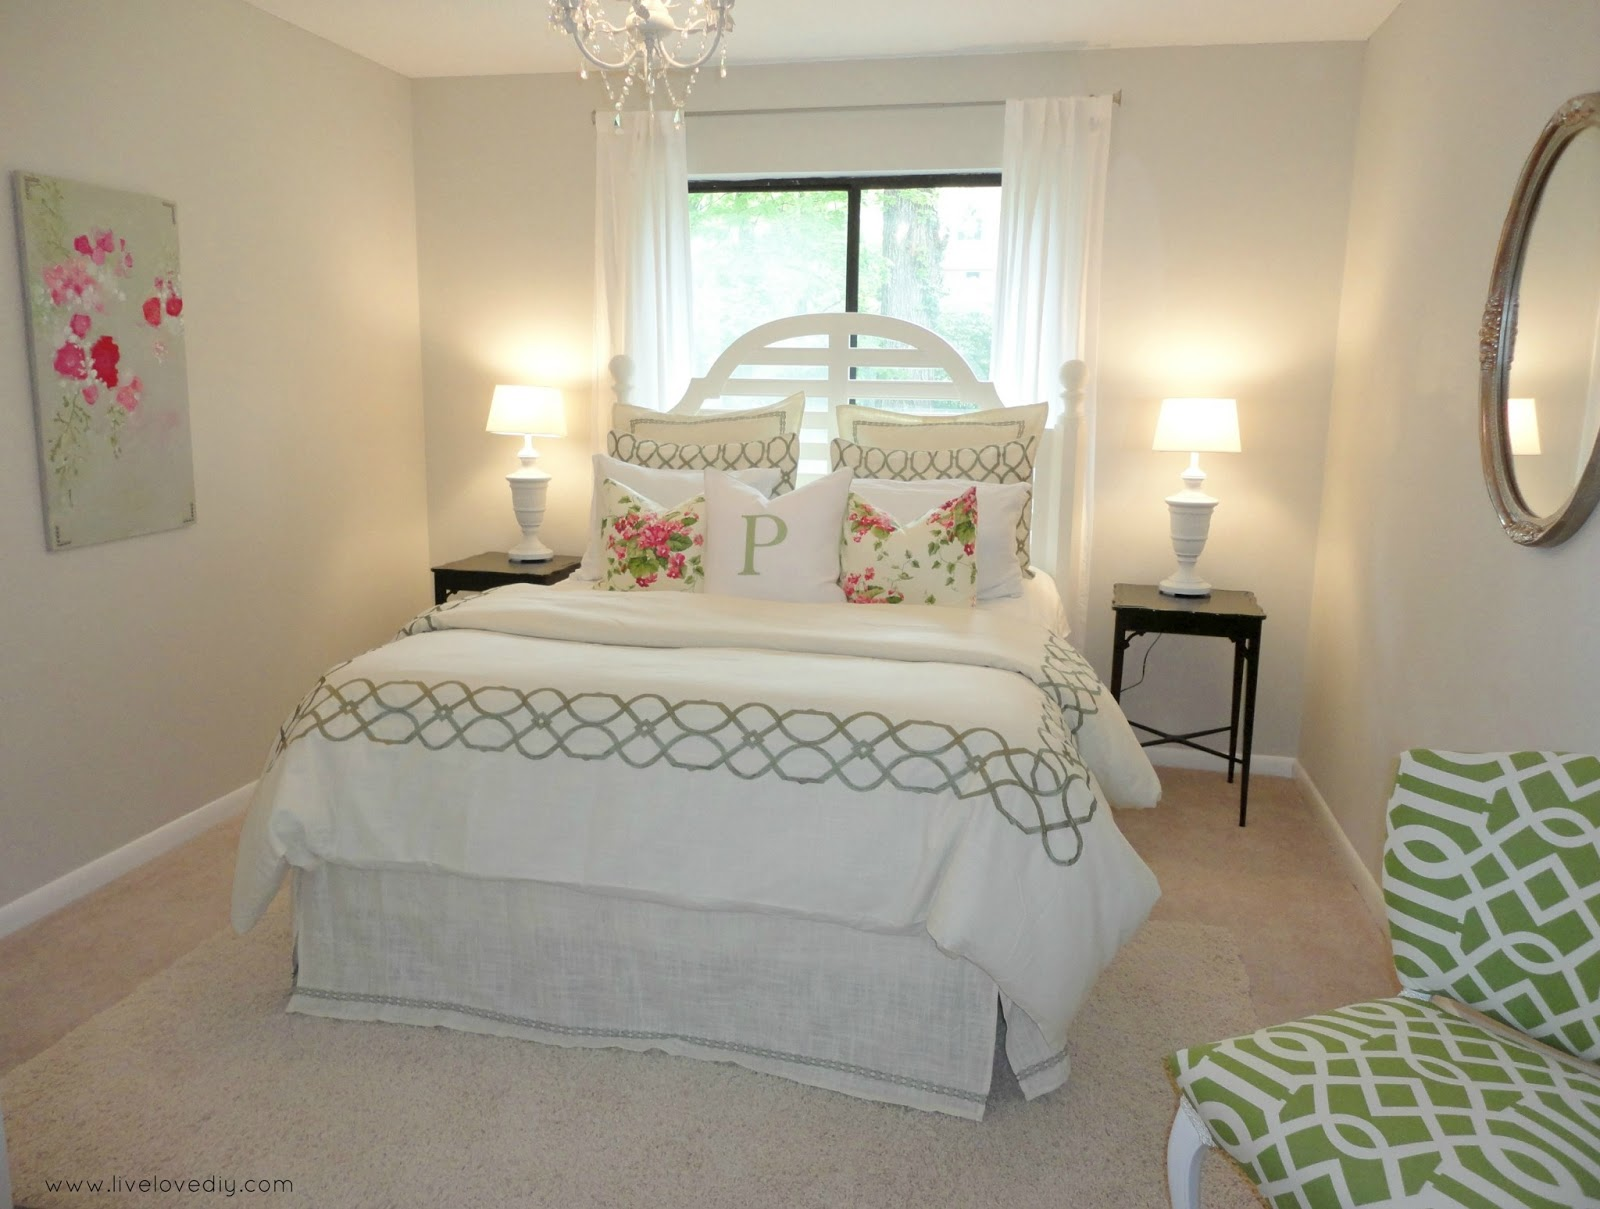 Livelovediy Decorating Bedrooms With Secondhand Finds The Guest Bedroom Reveal